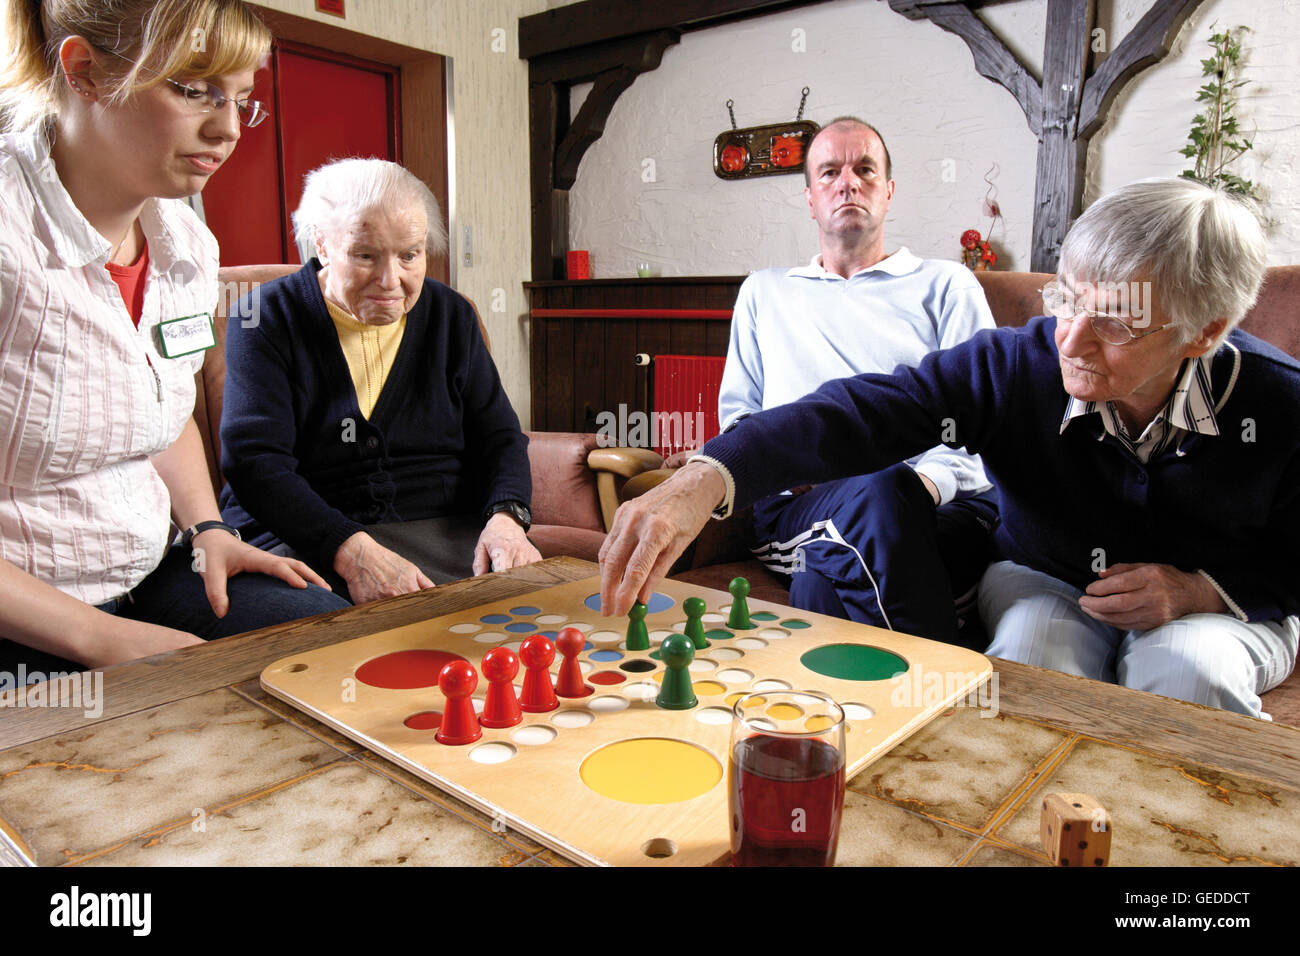 nurses and residents of an old age home or nursing home playing board stock photo 112163320 alamy. Black Bedroom Furniture Sets. Home Design Ideas